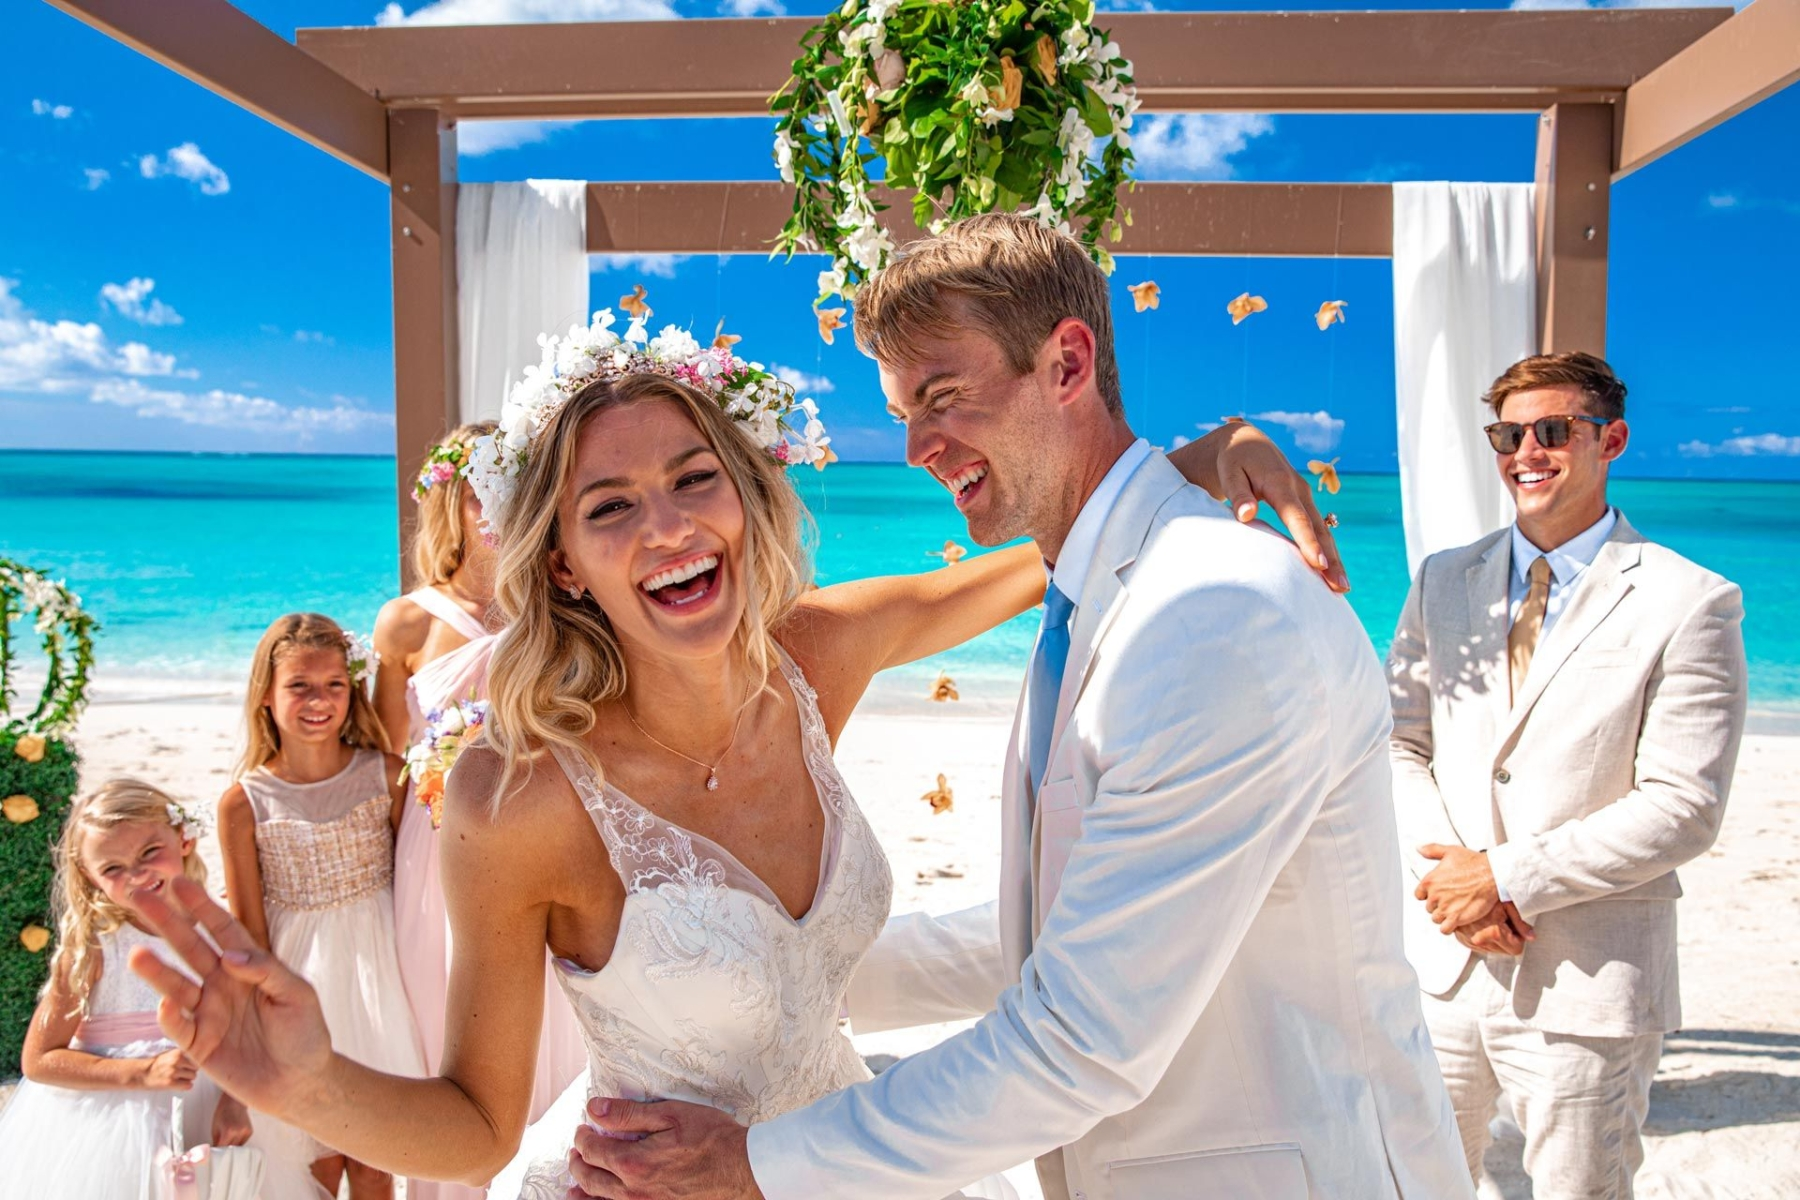 Sandals Resorts Weddings: Features and Scenery for Your Destination Wedding from 2 Travel Anywhere